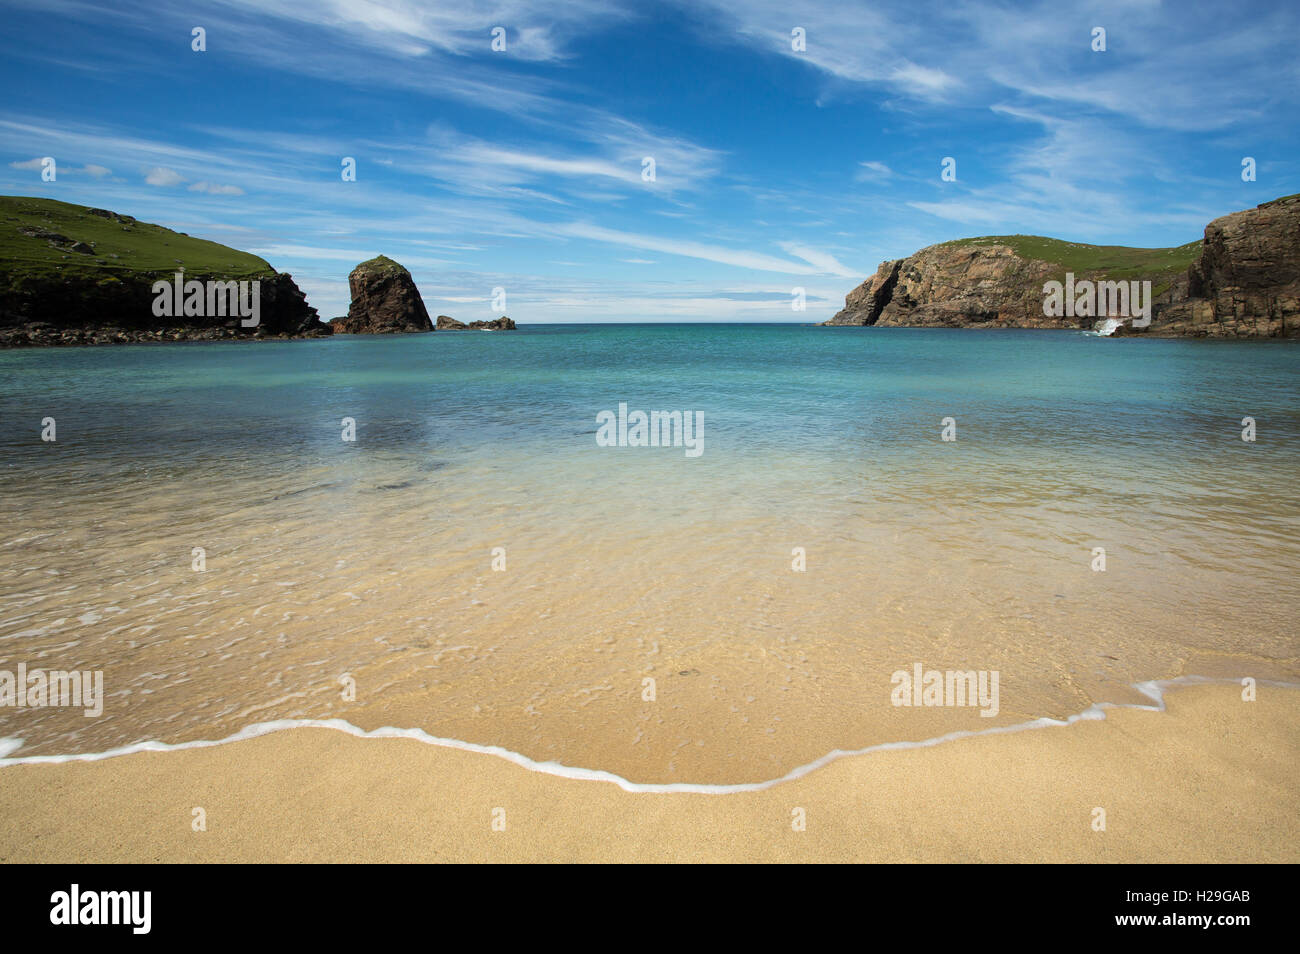 Rippling waves lapping the sandy shoreline at Dalbeg Bay, Isle of Lewis, Outer Hebrides, Scotland, - Stock Image